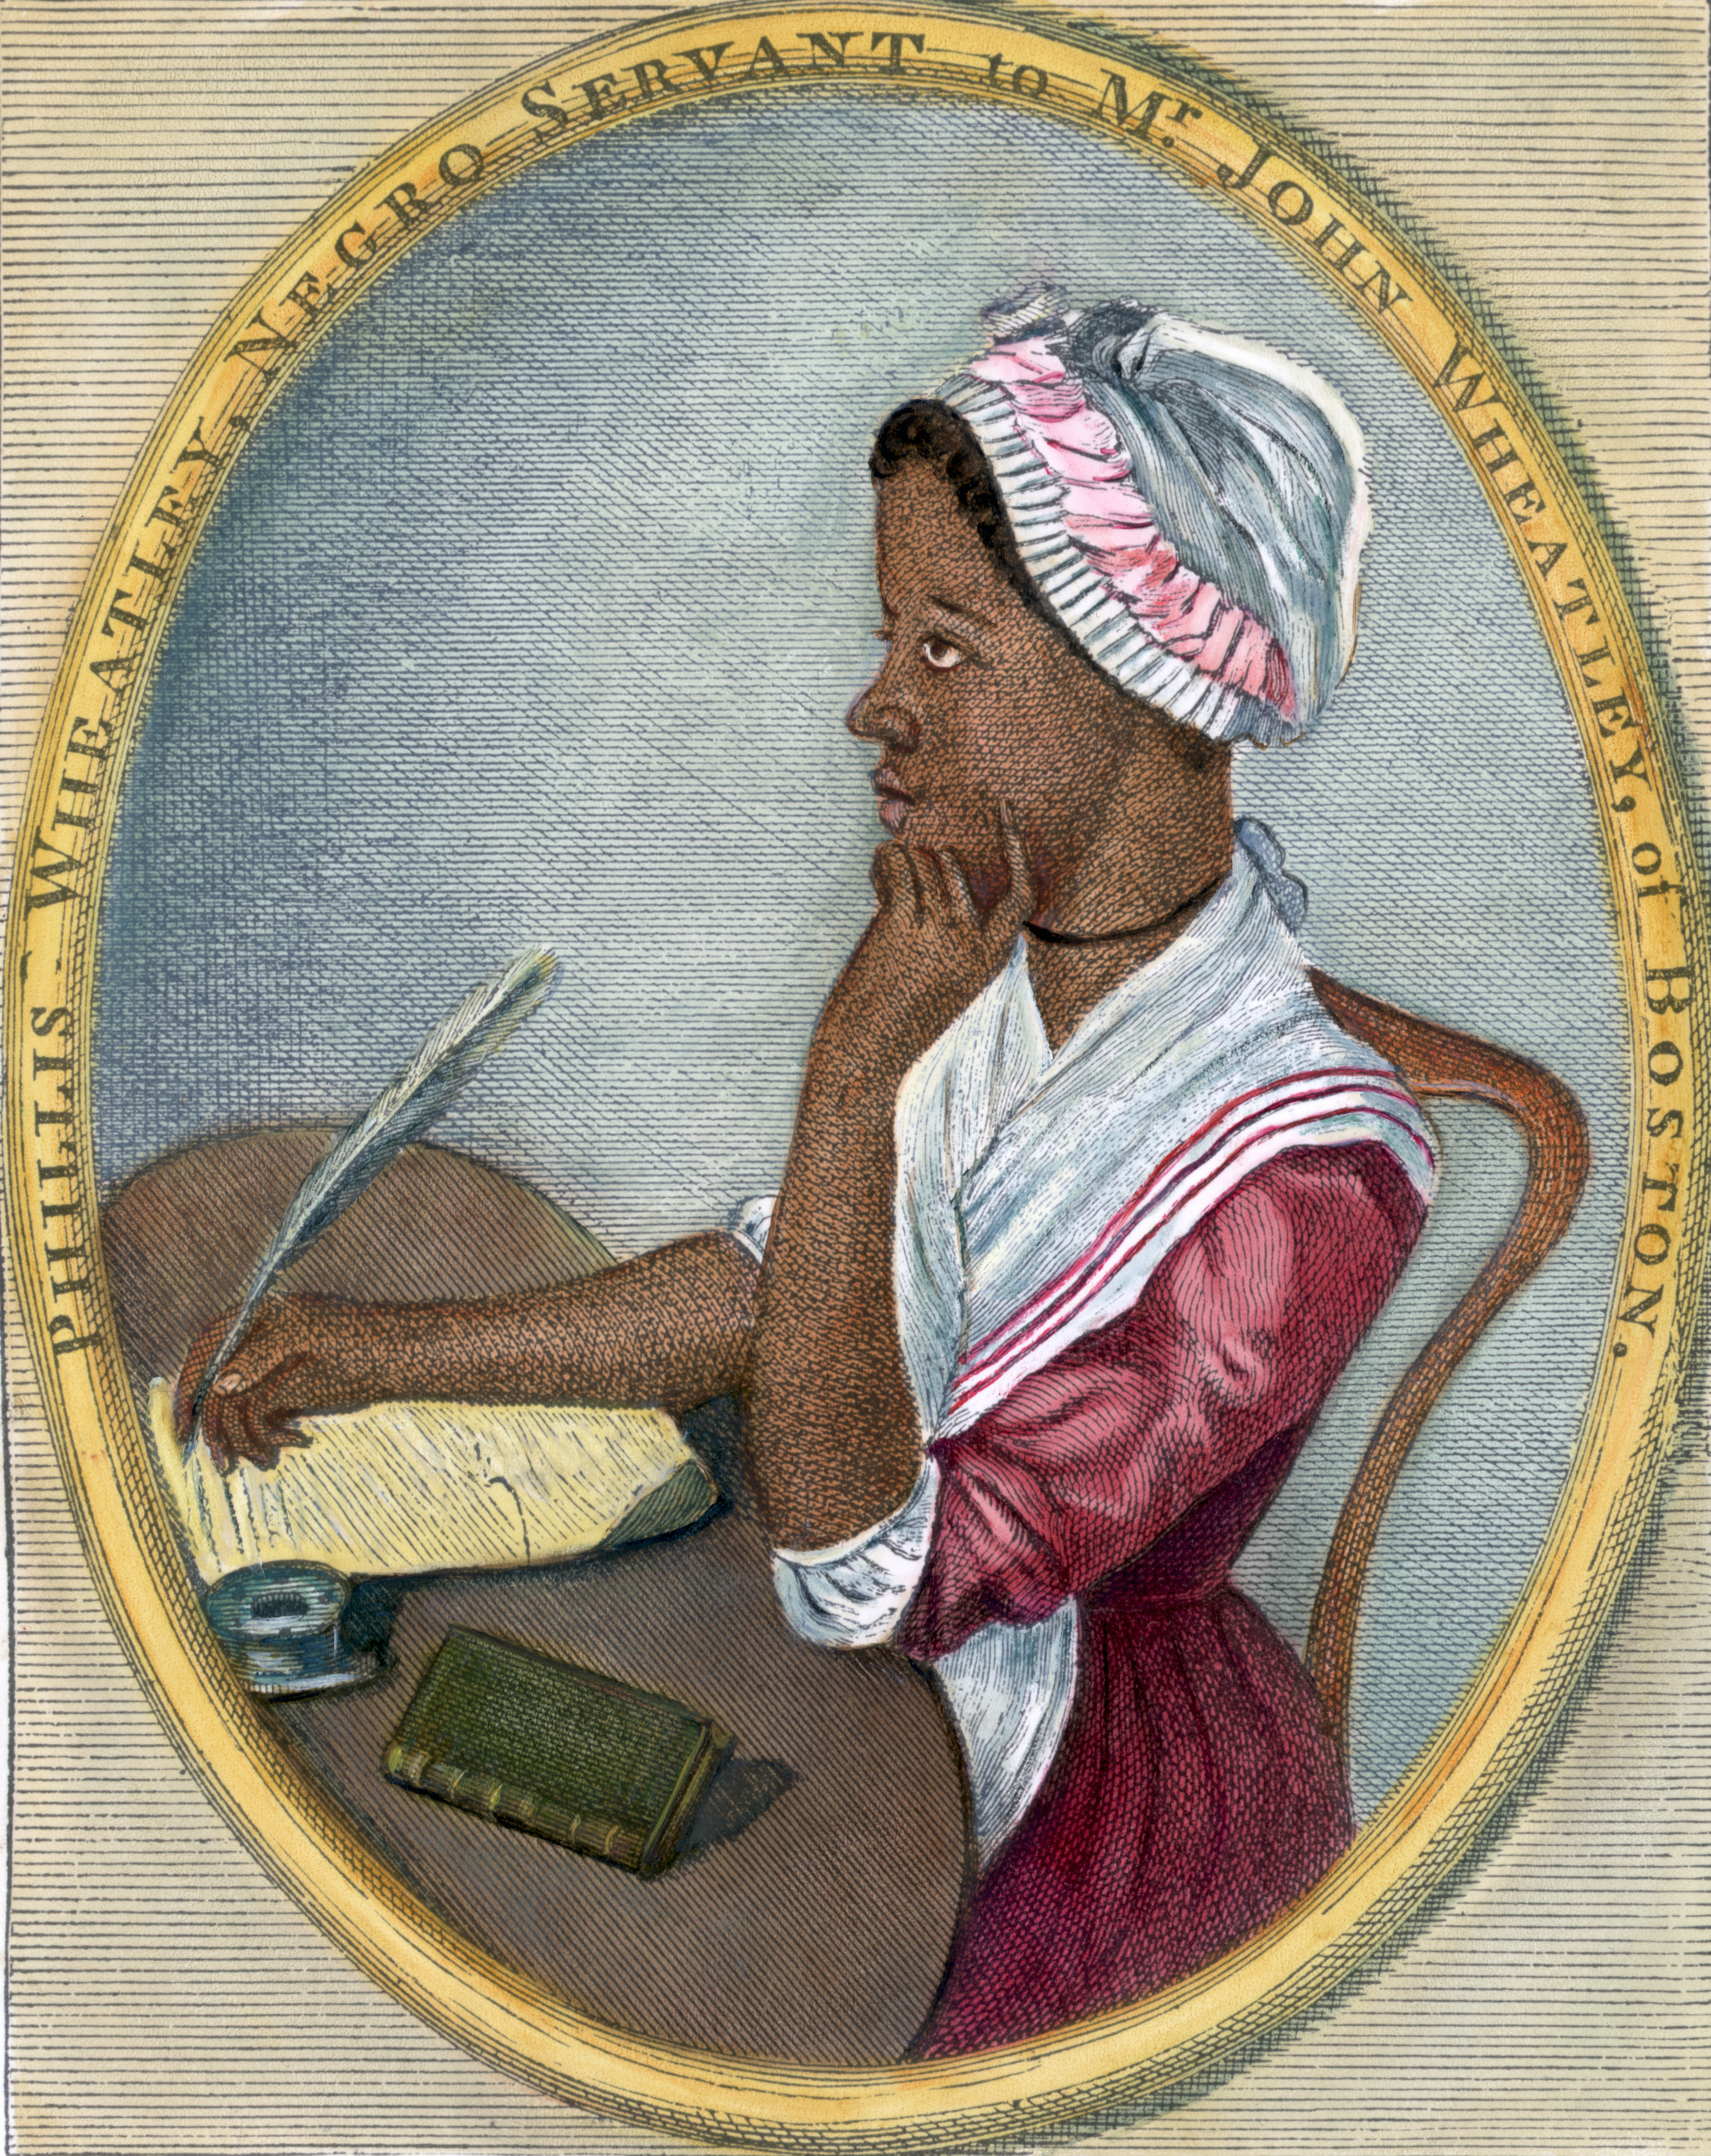 zora neale hurston black women authors pictures black women in phillis wheatley west africa boston slavery celebrated author black history